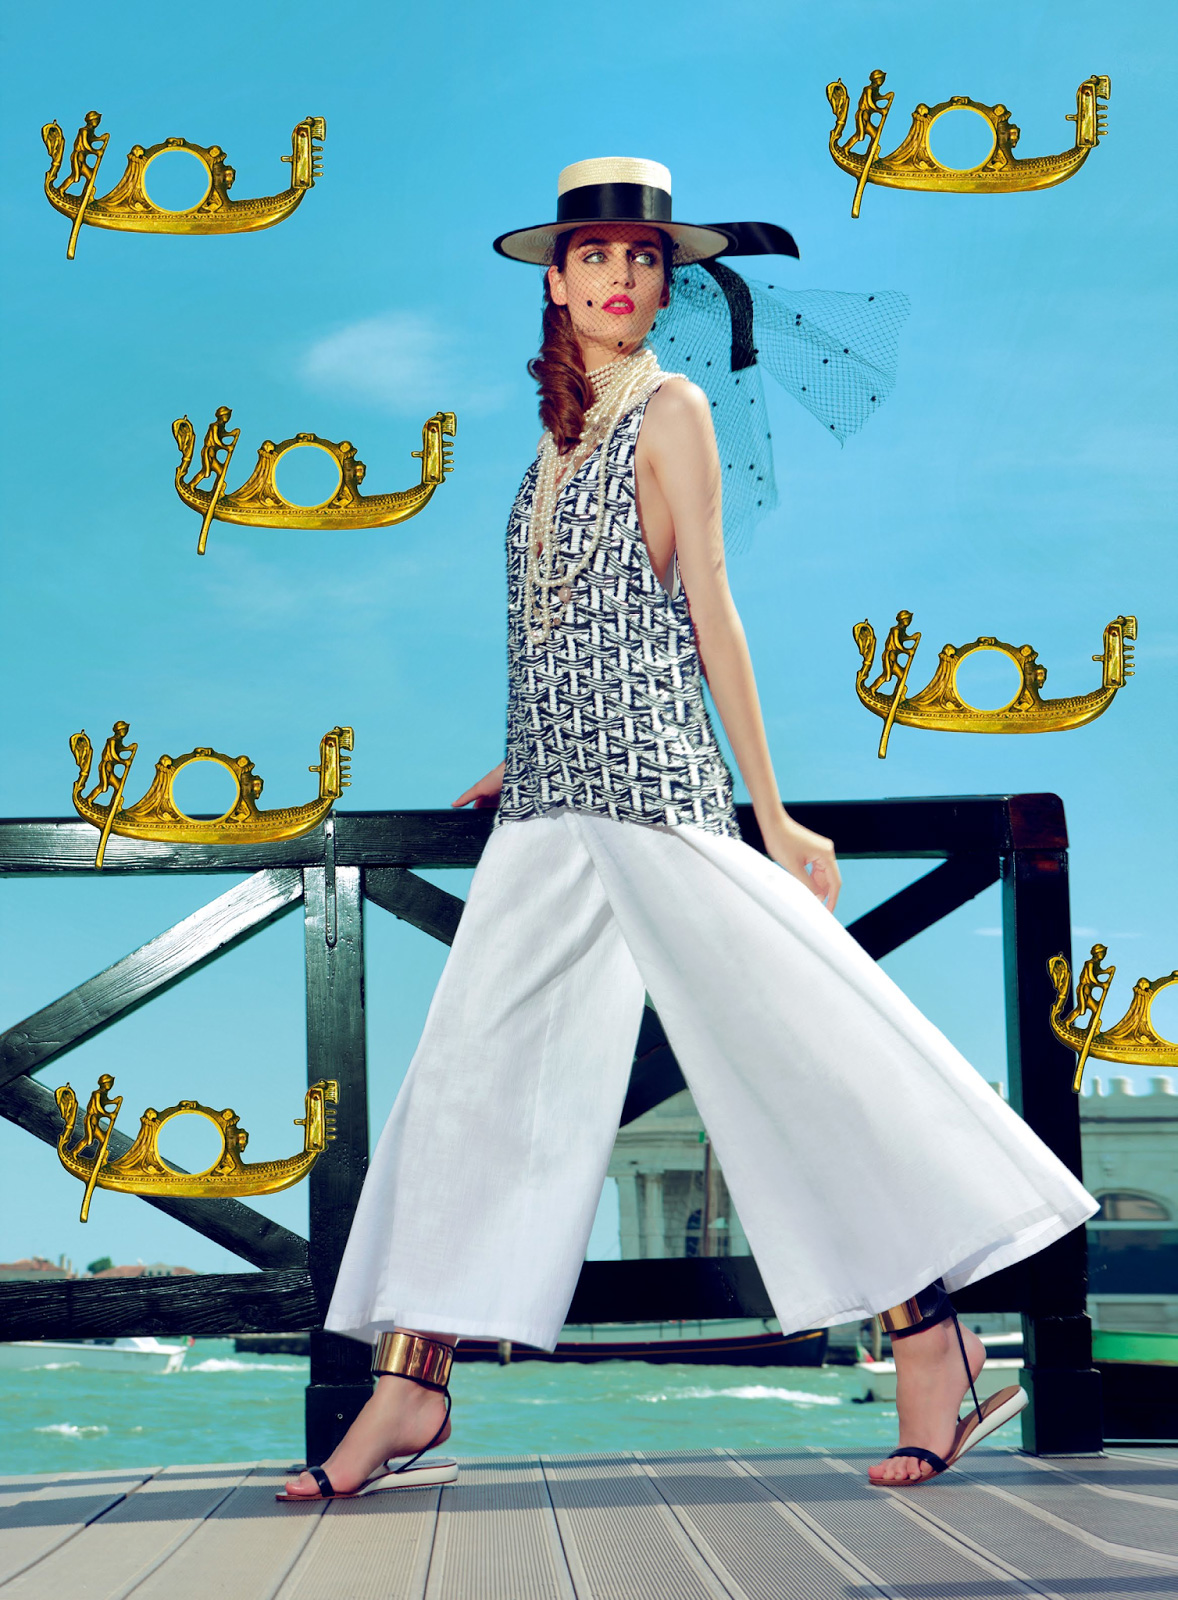 Zuzanna-Bijoch-by-Pierpaolo-Ferrari-for-Vogue-Japan-February-2014-(My-Fascination-with-Venice)-(8)